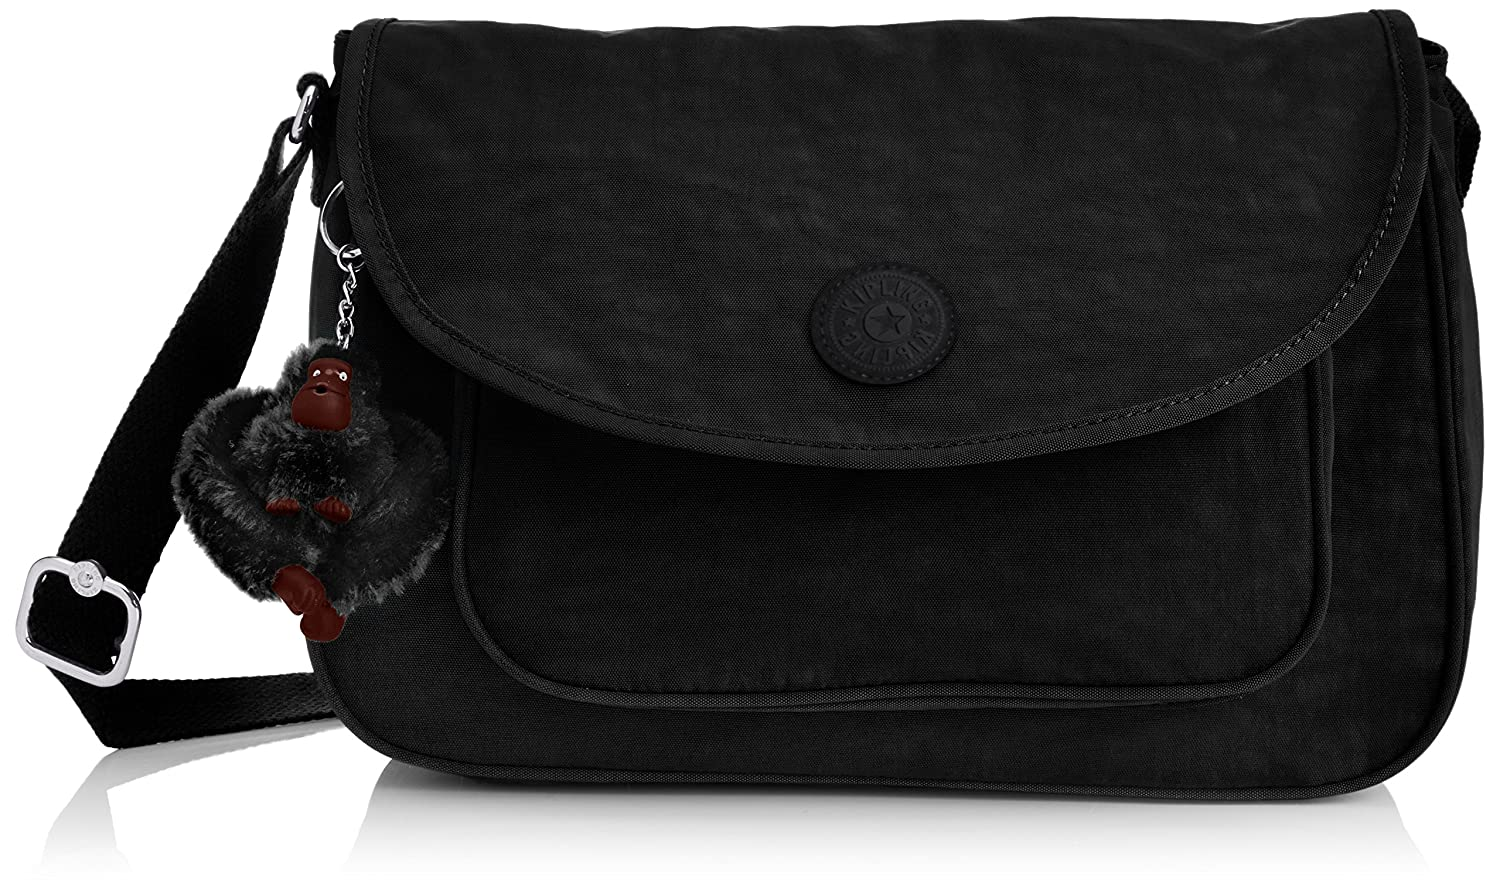 VIDA Statement Bag - Toledo by VIDA mcRLsFyow